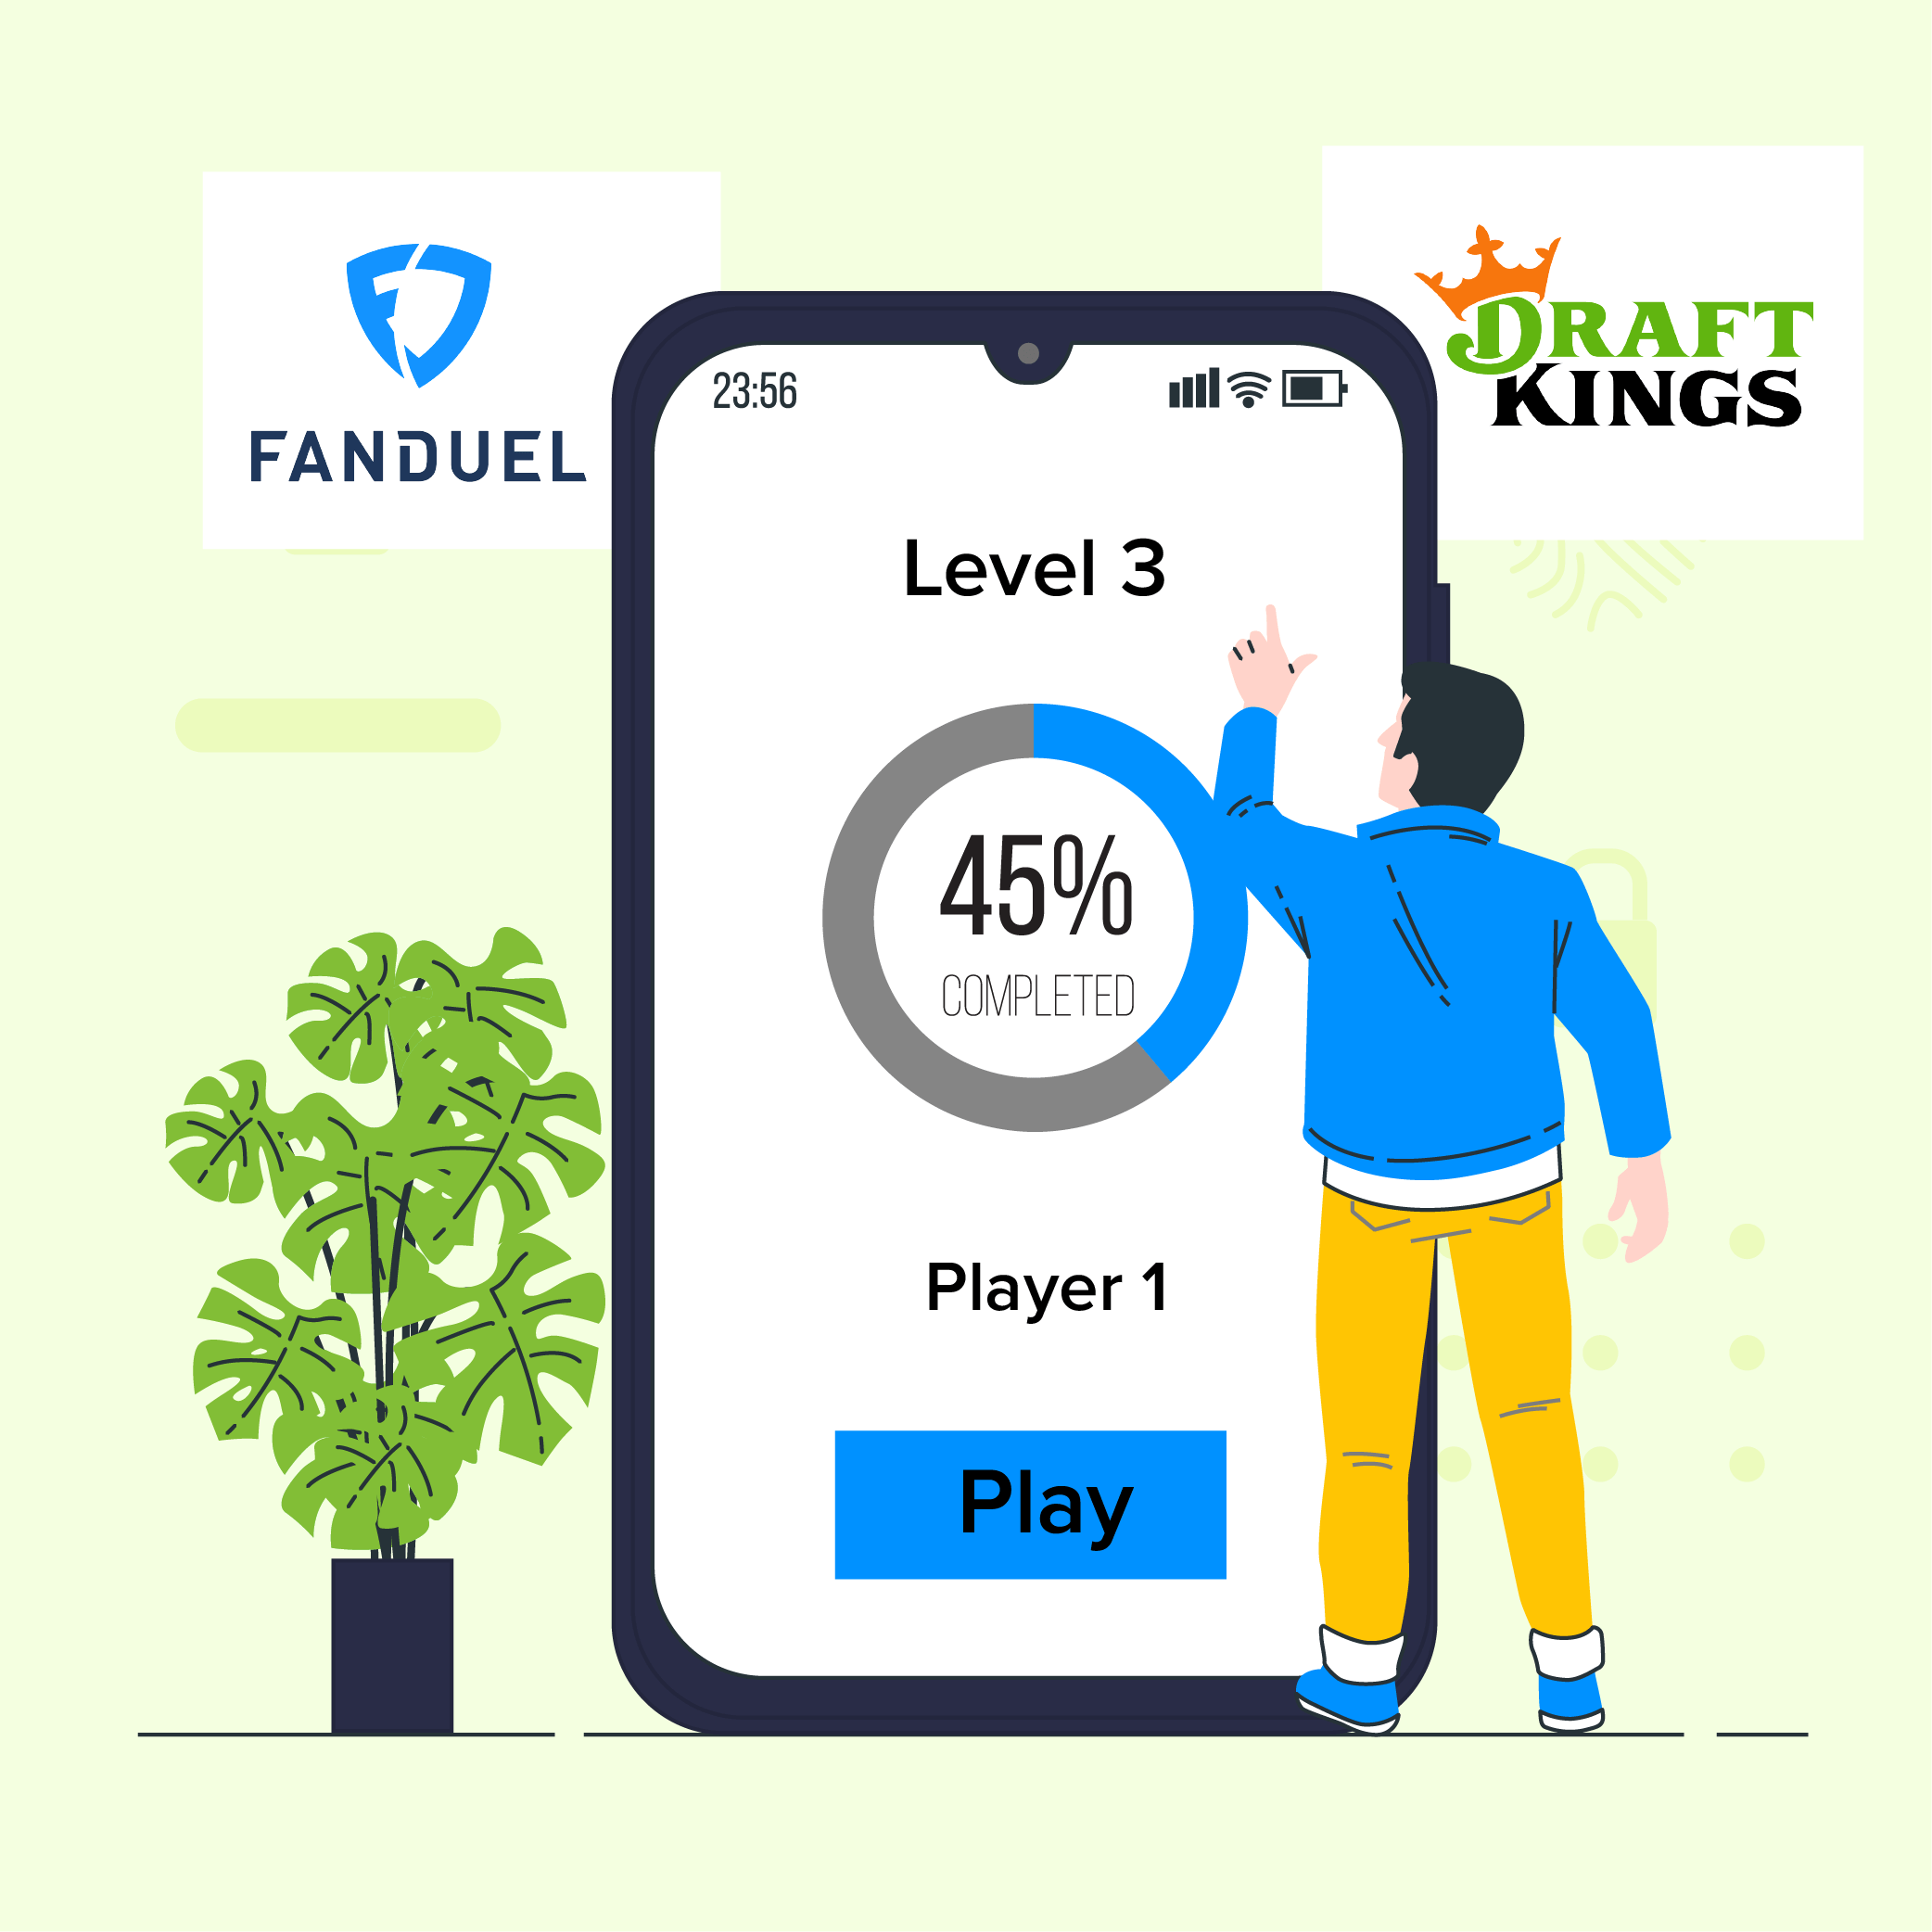 Fantasy Sports App Fanduel and Draftkings Transforming the Industry